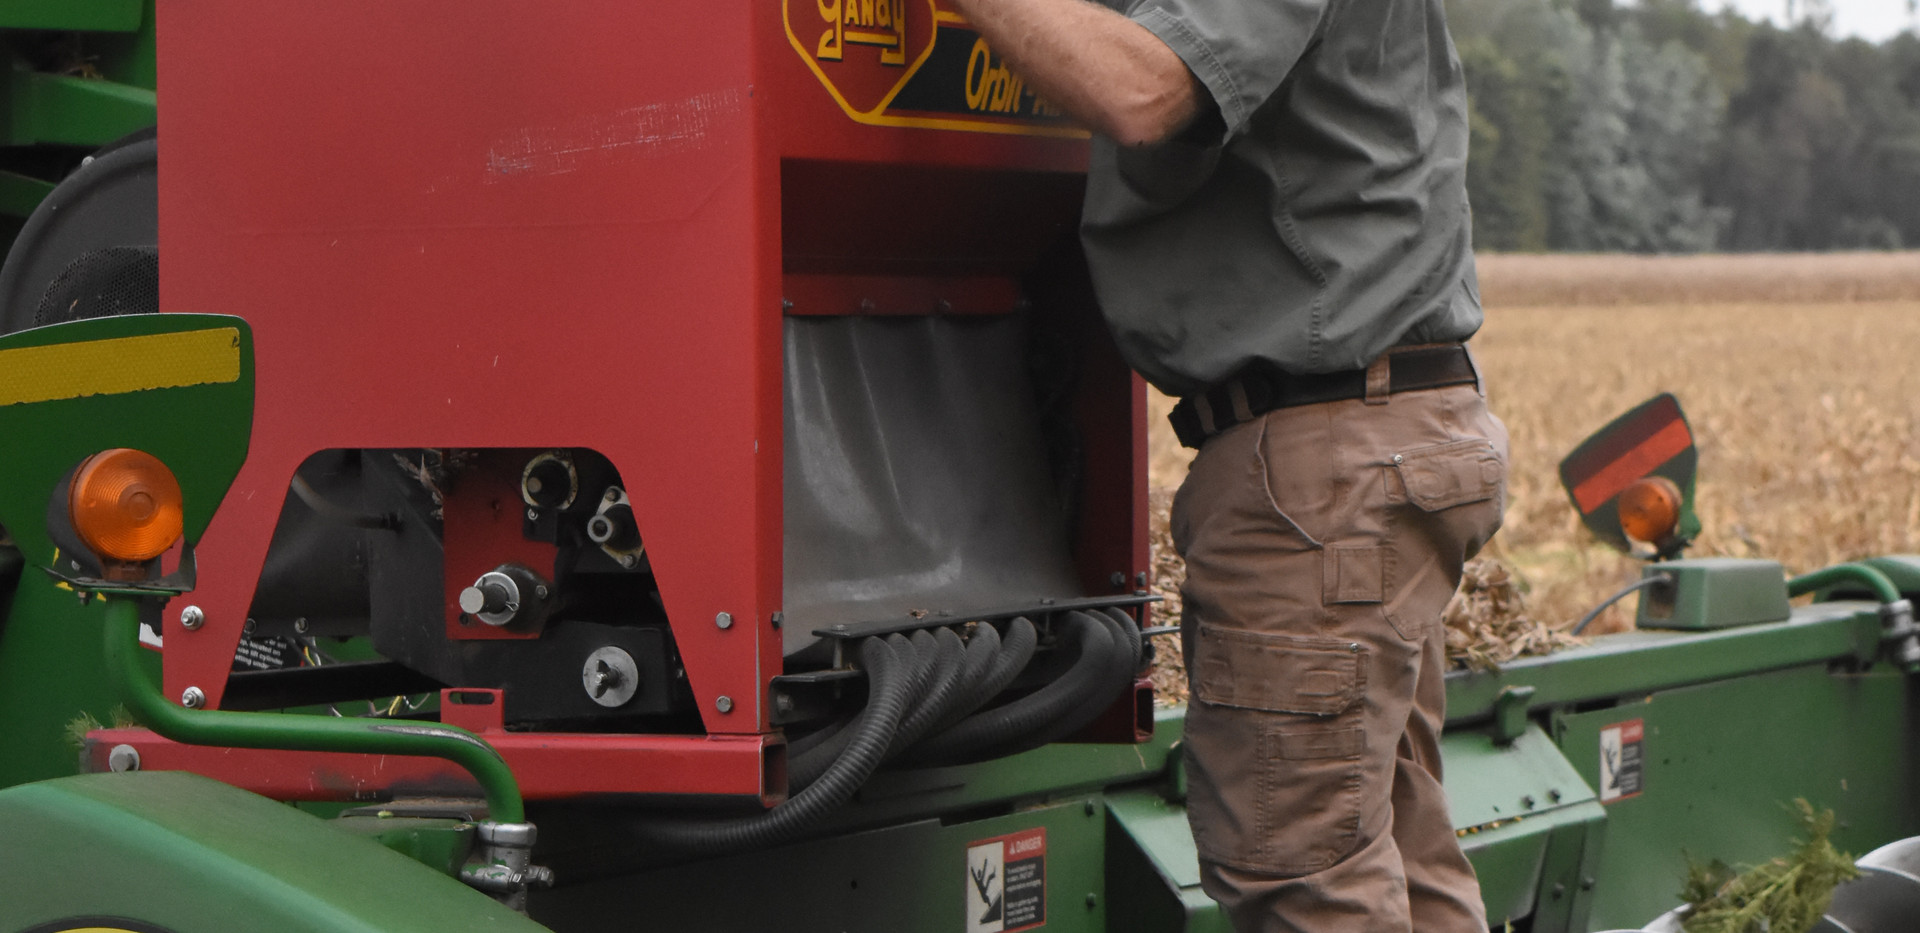 Inspecting a cover crop seeder.jpg